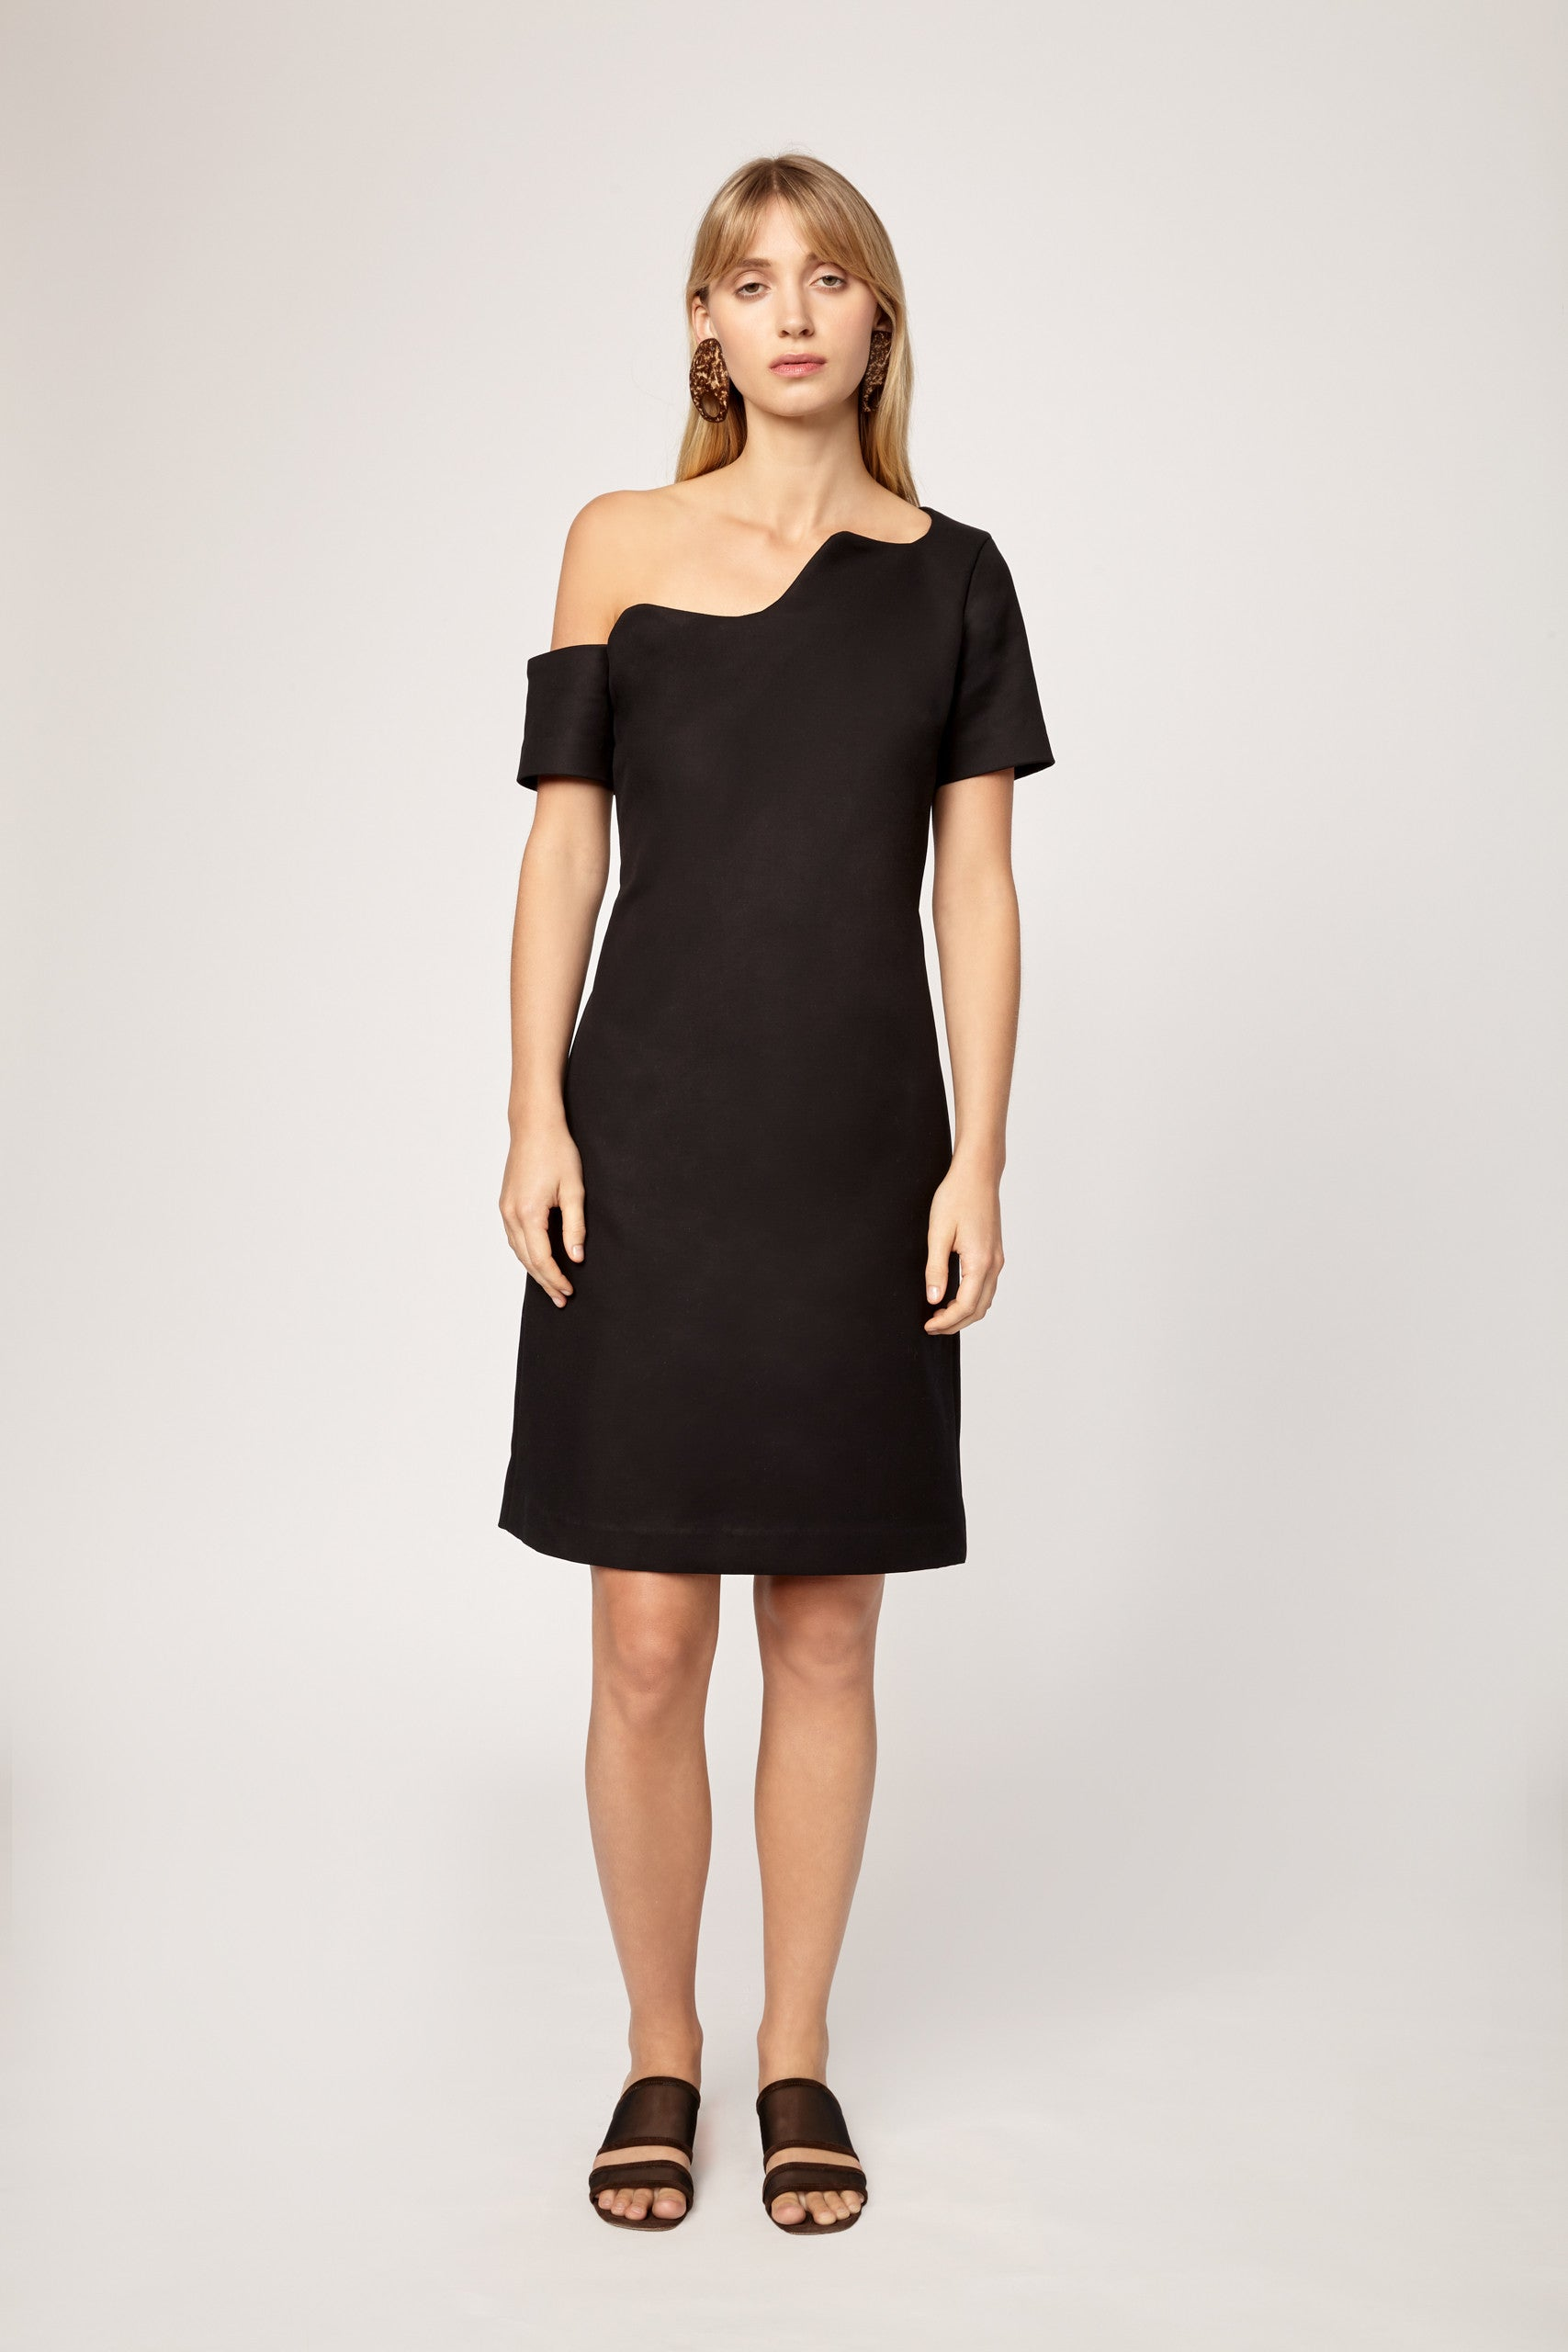 The Roanne Dress